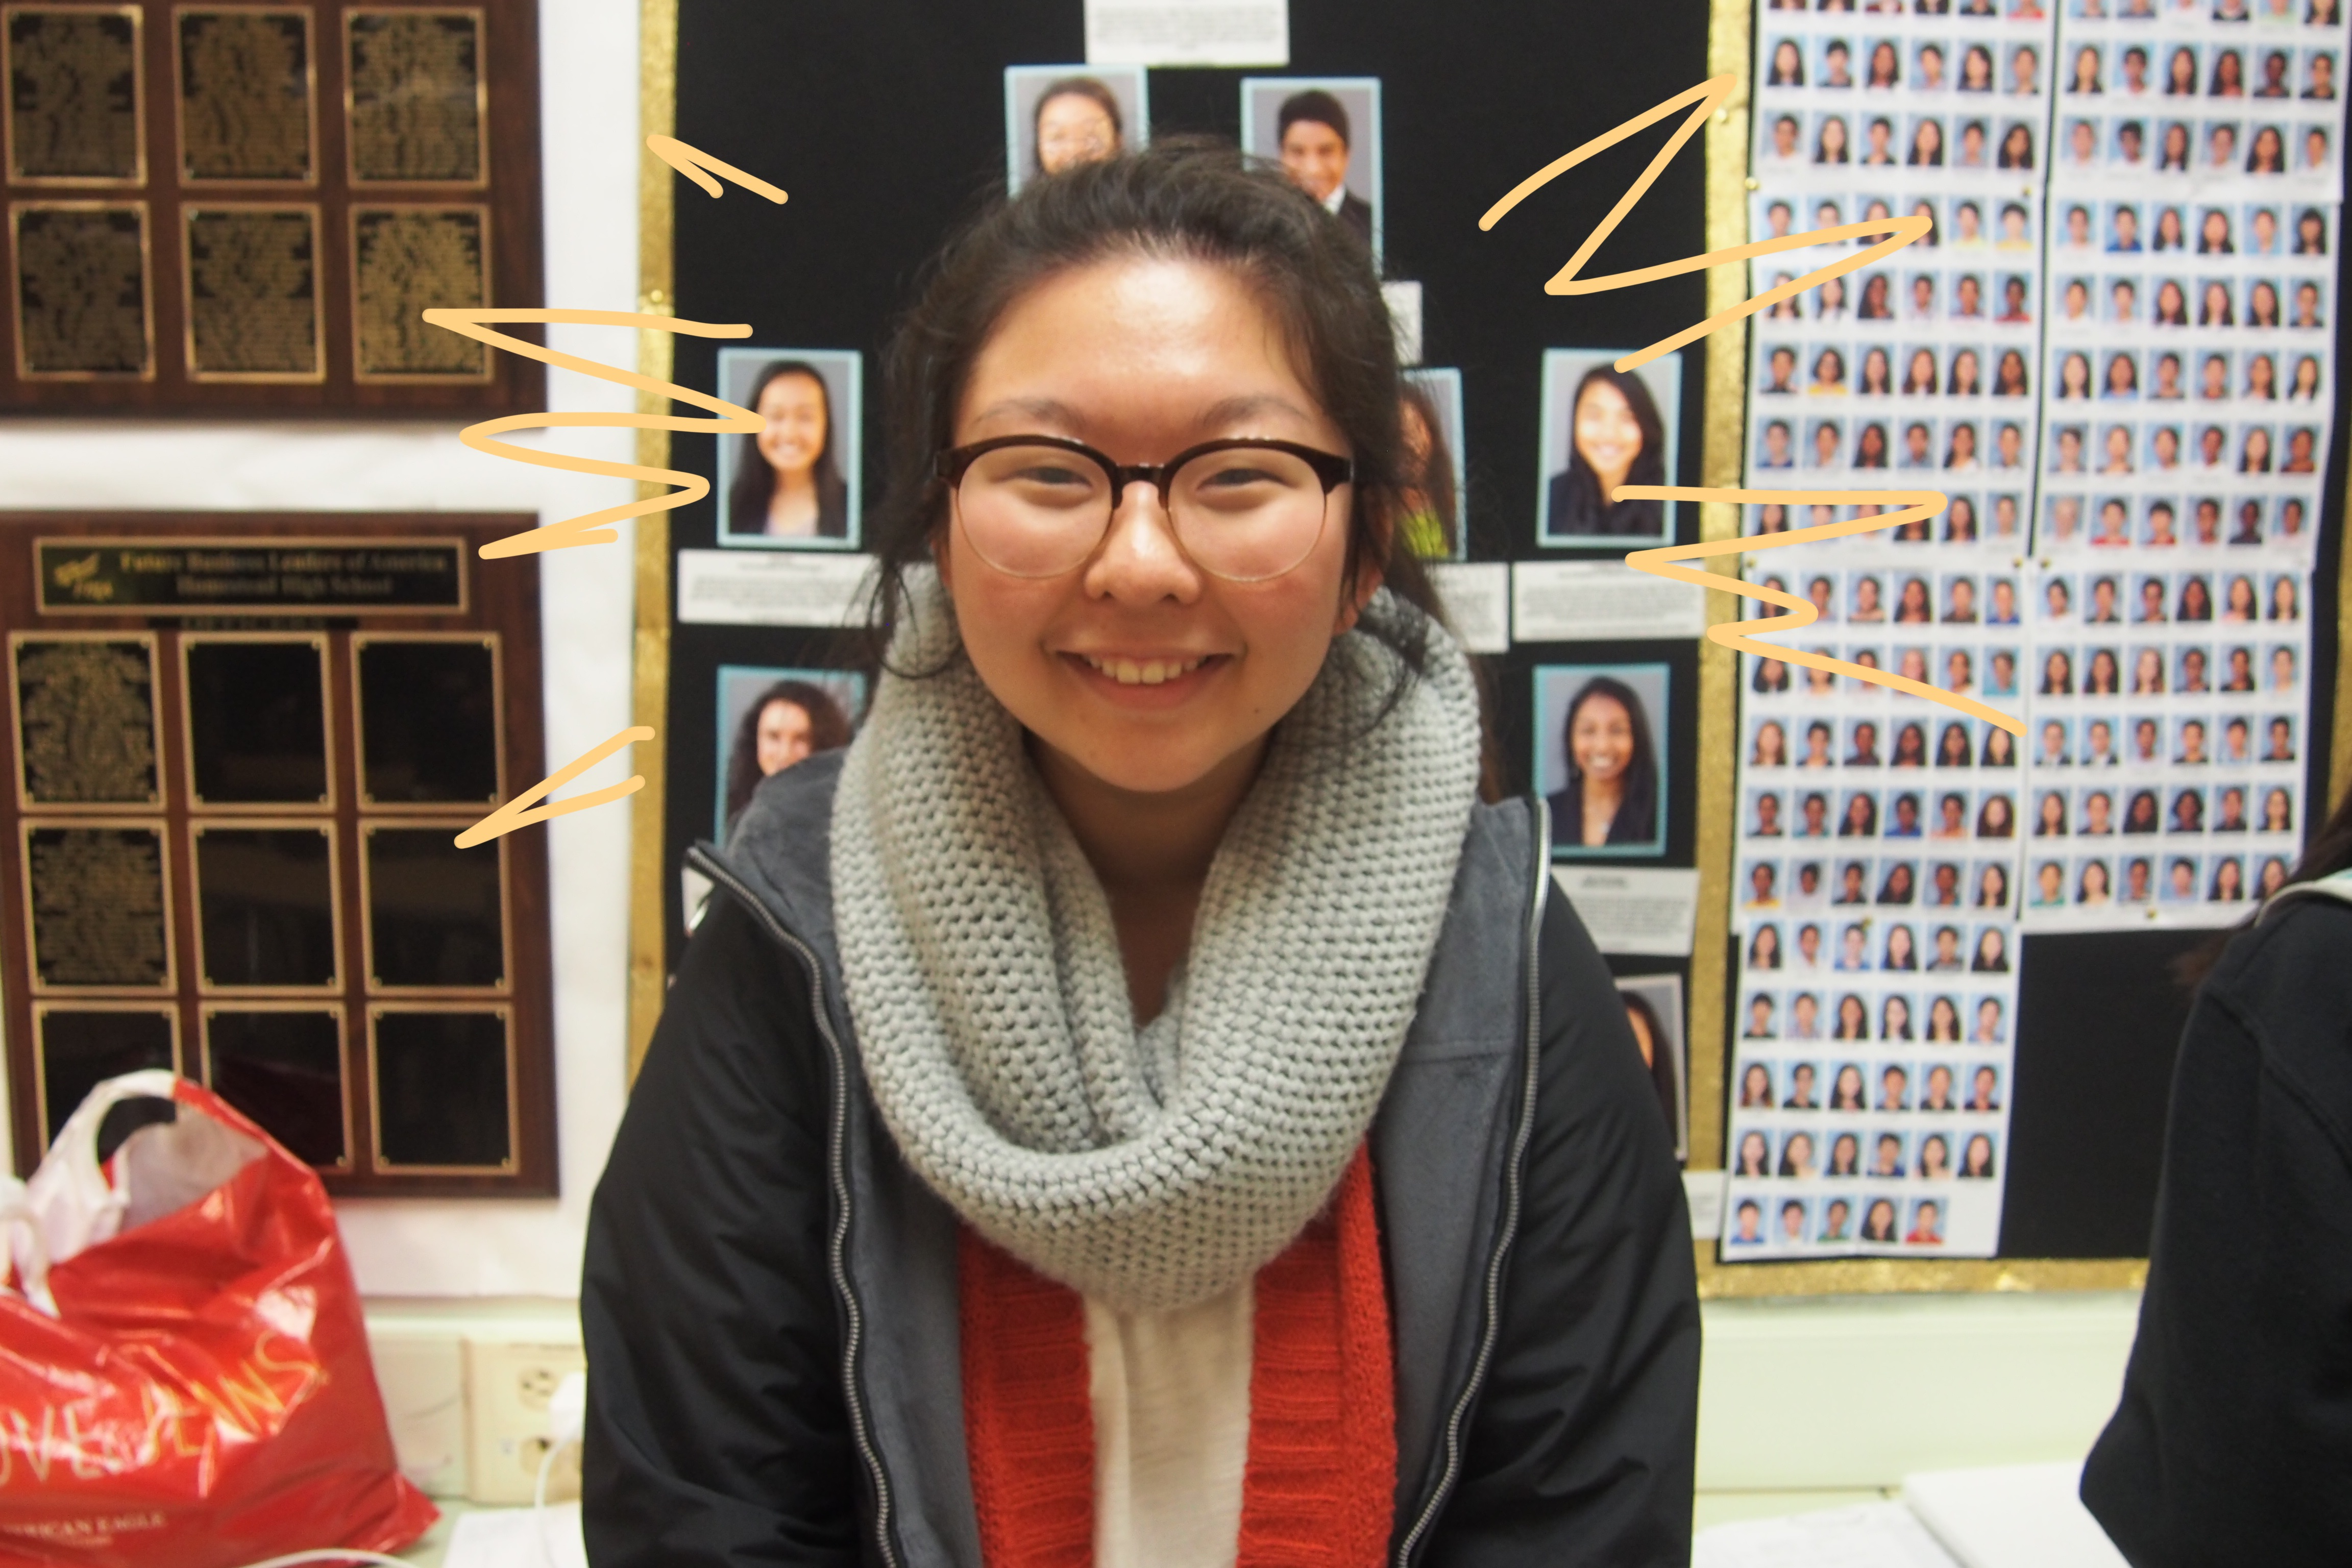 """Senior Grace Kim said she is looking forward to attending a four-year college while majoring in either business or computer science. Kim said she has advice for new FBLA members. """"Take advantage of all the opportunities that you have around, especially in FBLA,"""" Kim said. """"I really, really got involved in my freshman year and kept up with it and I grew to love what FBLA has to offer and all the relationships I was able to build. Take advantage of those and make the most out of your high school experience."""""""